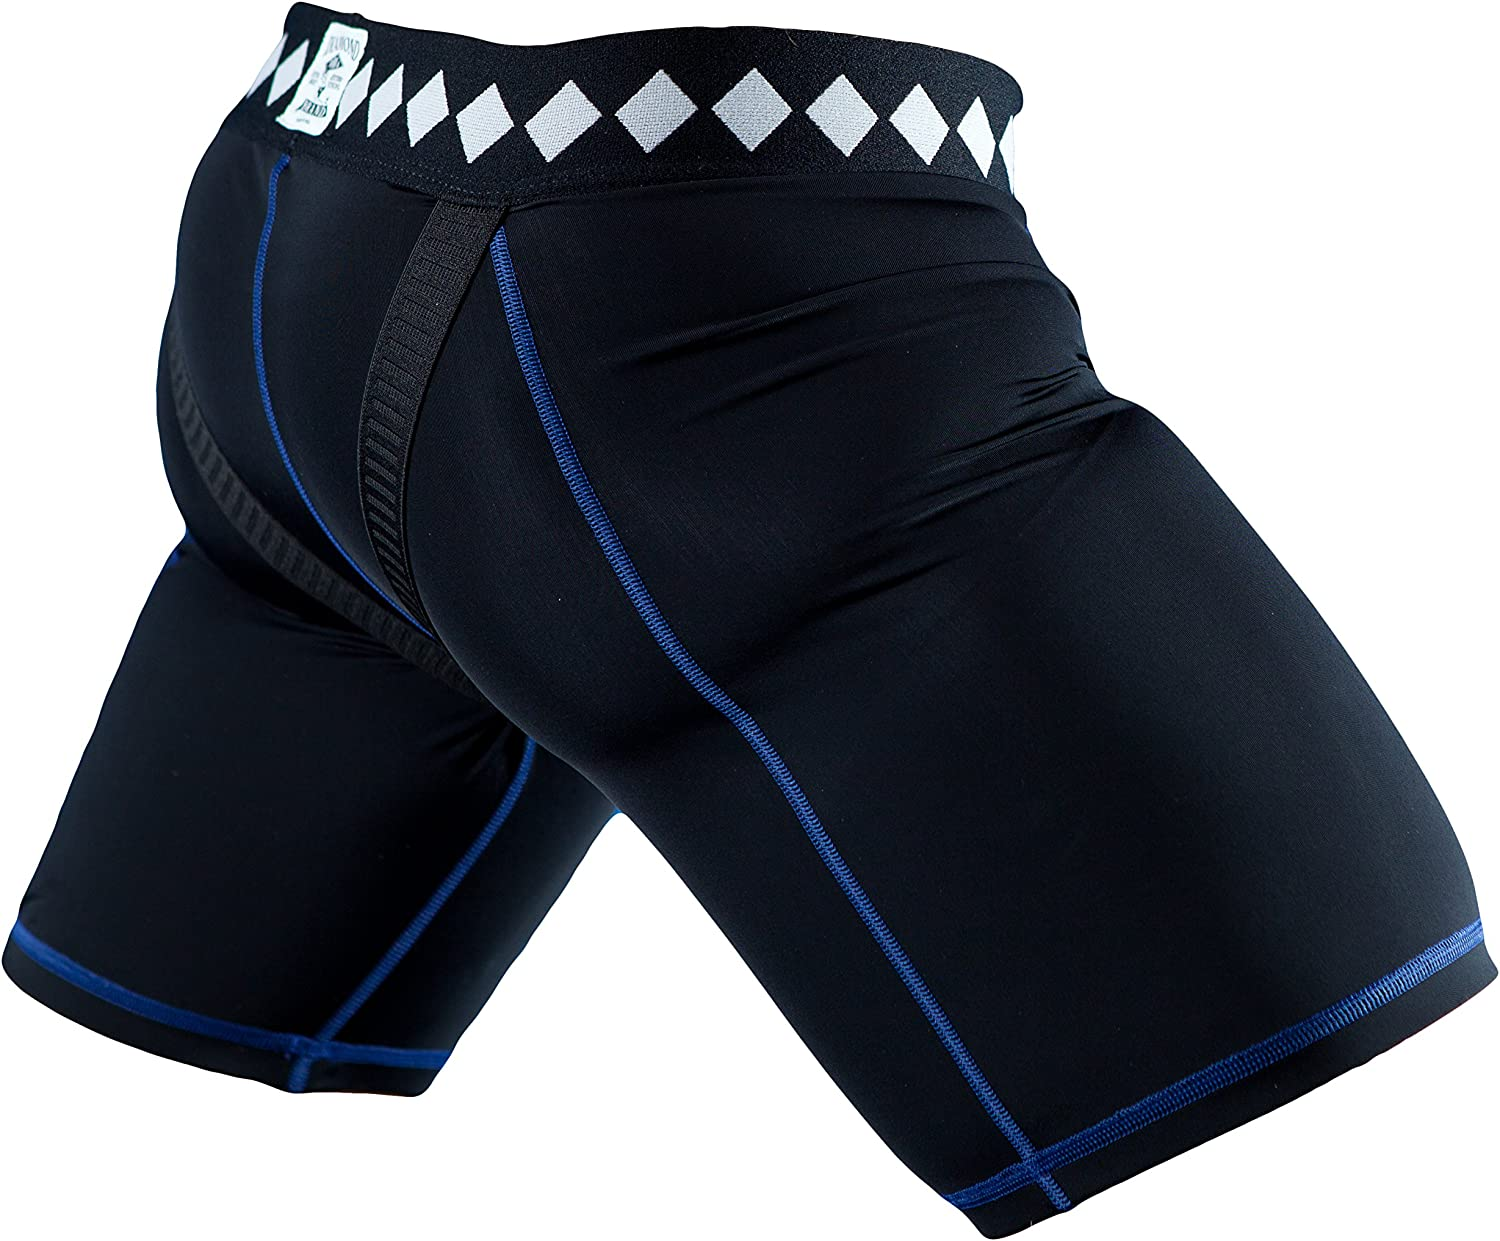 Diamond MMA Compression Shorts with Built In 4-Strap Jock